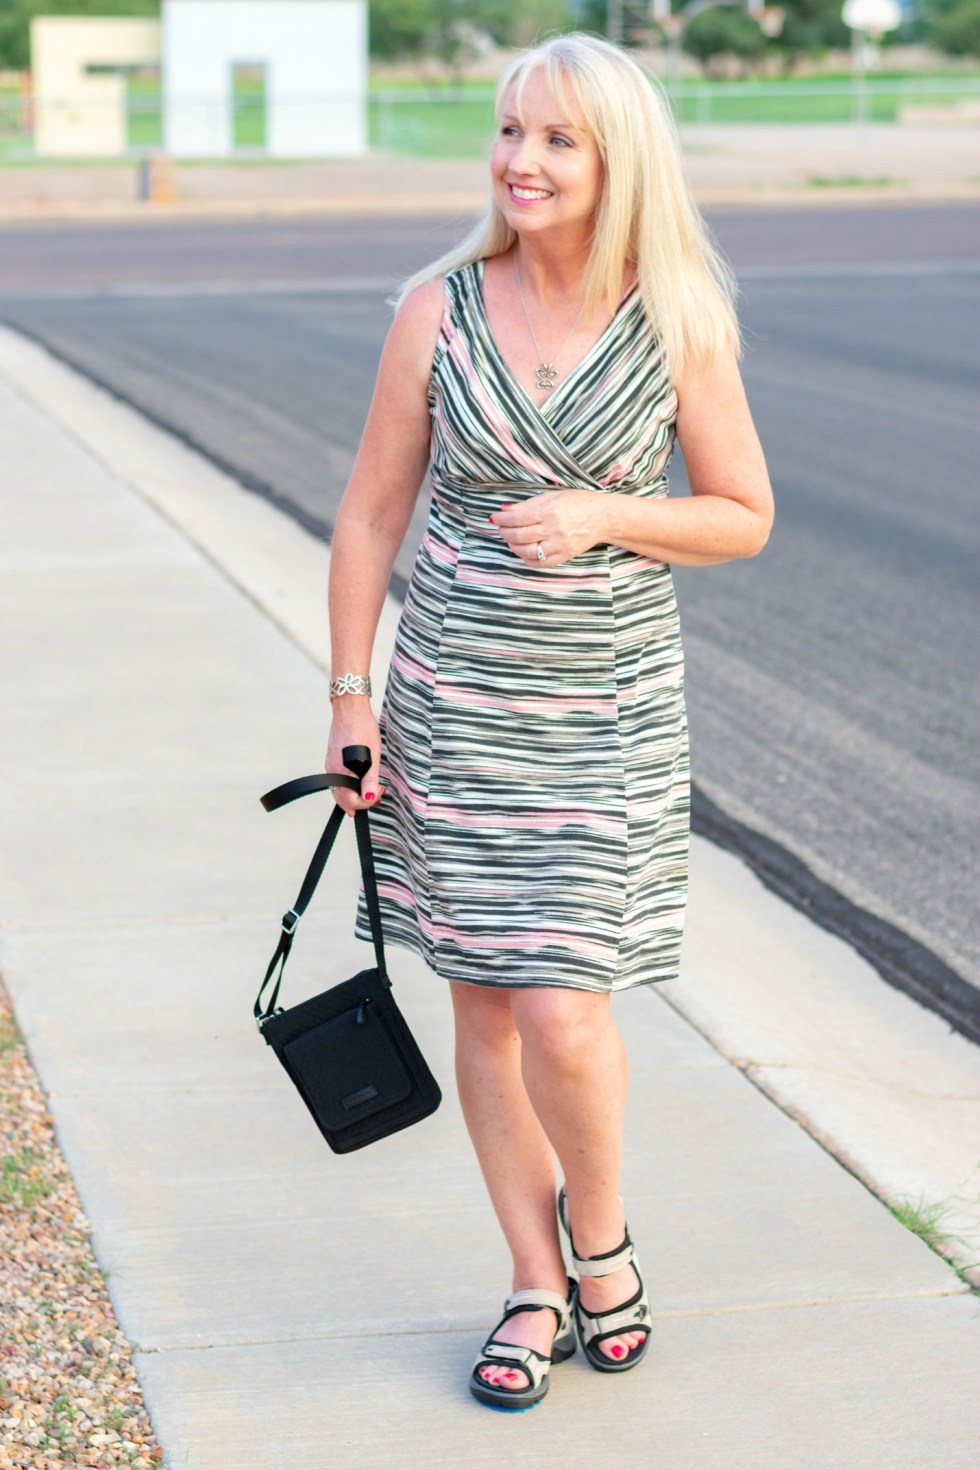 Comfortable Shoes and Summer Dress